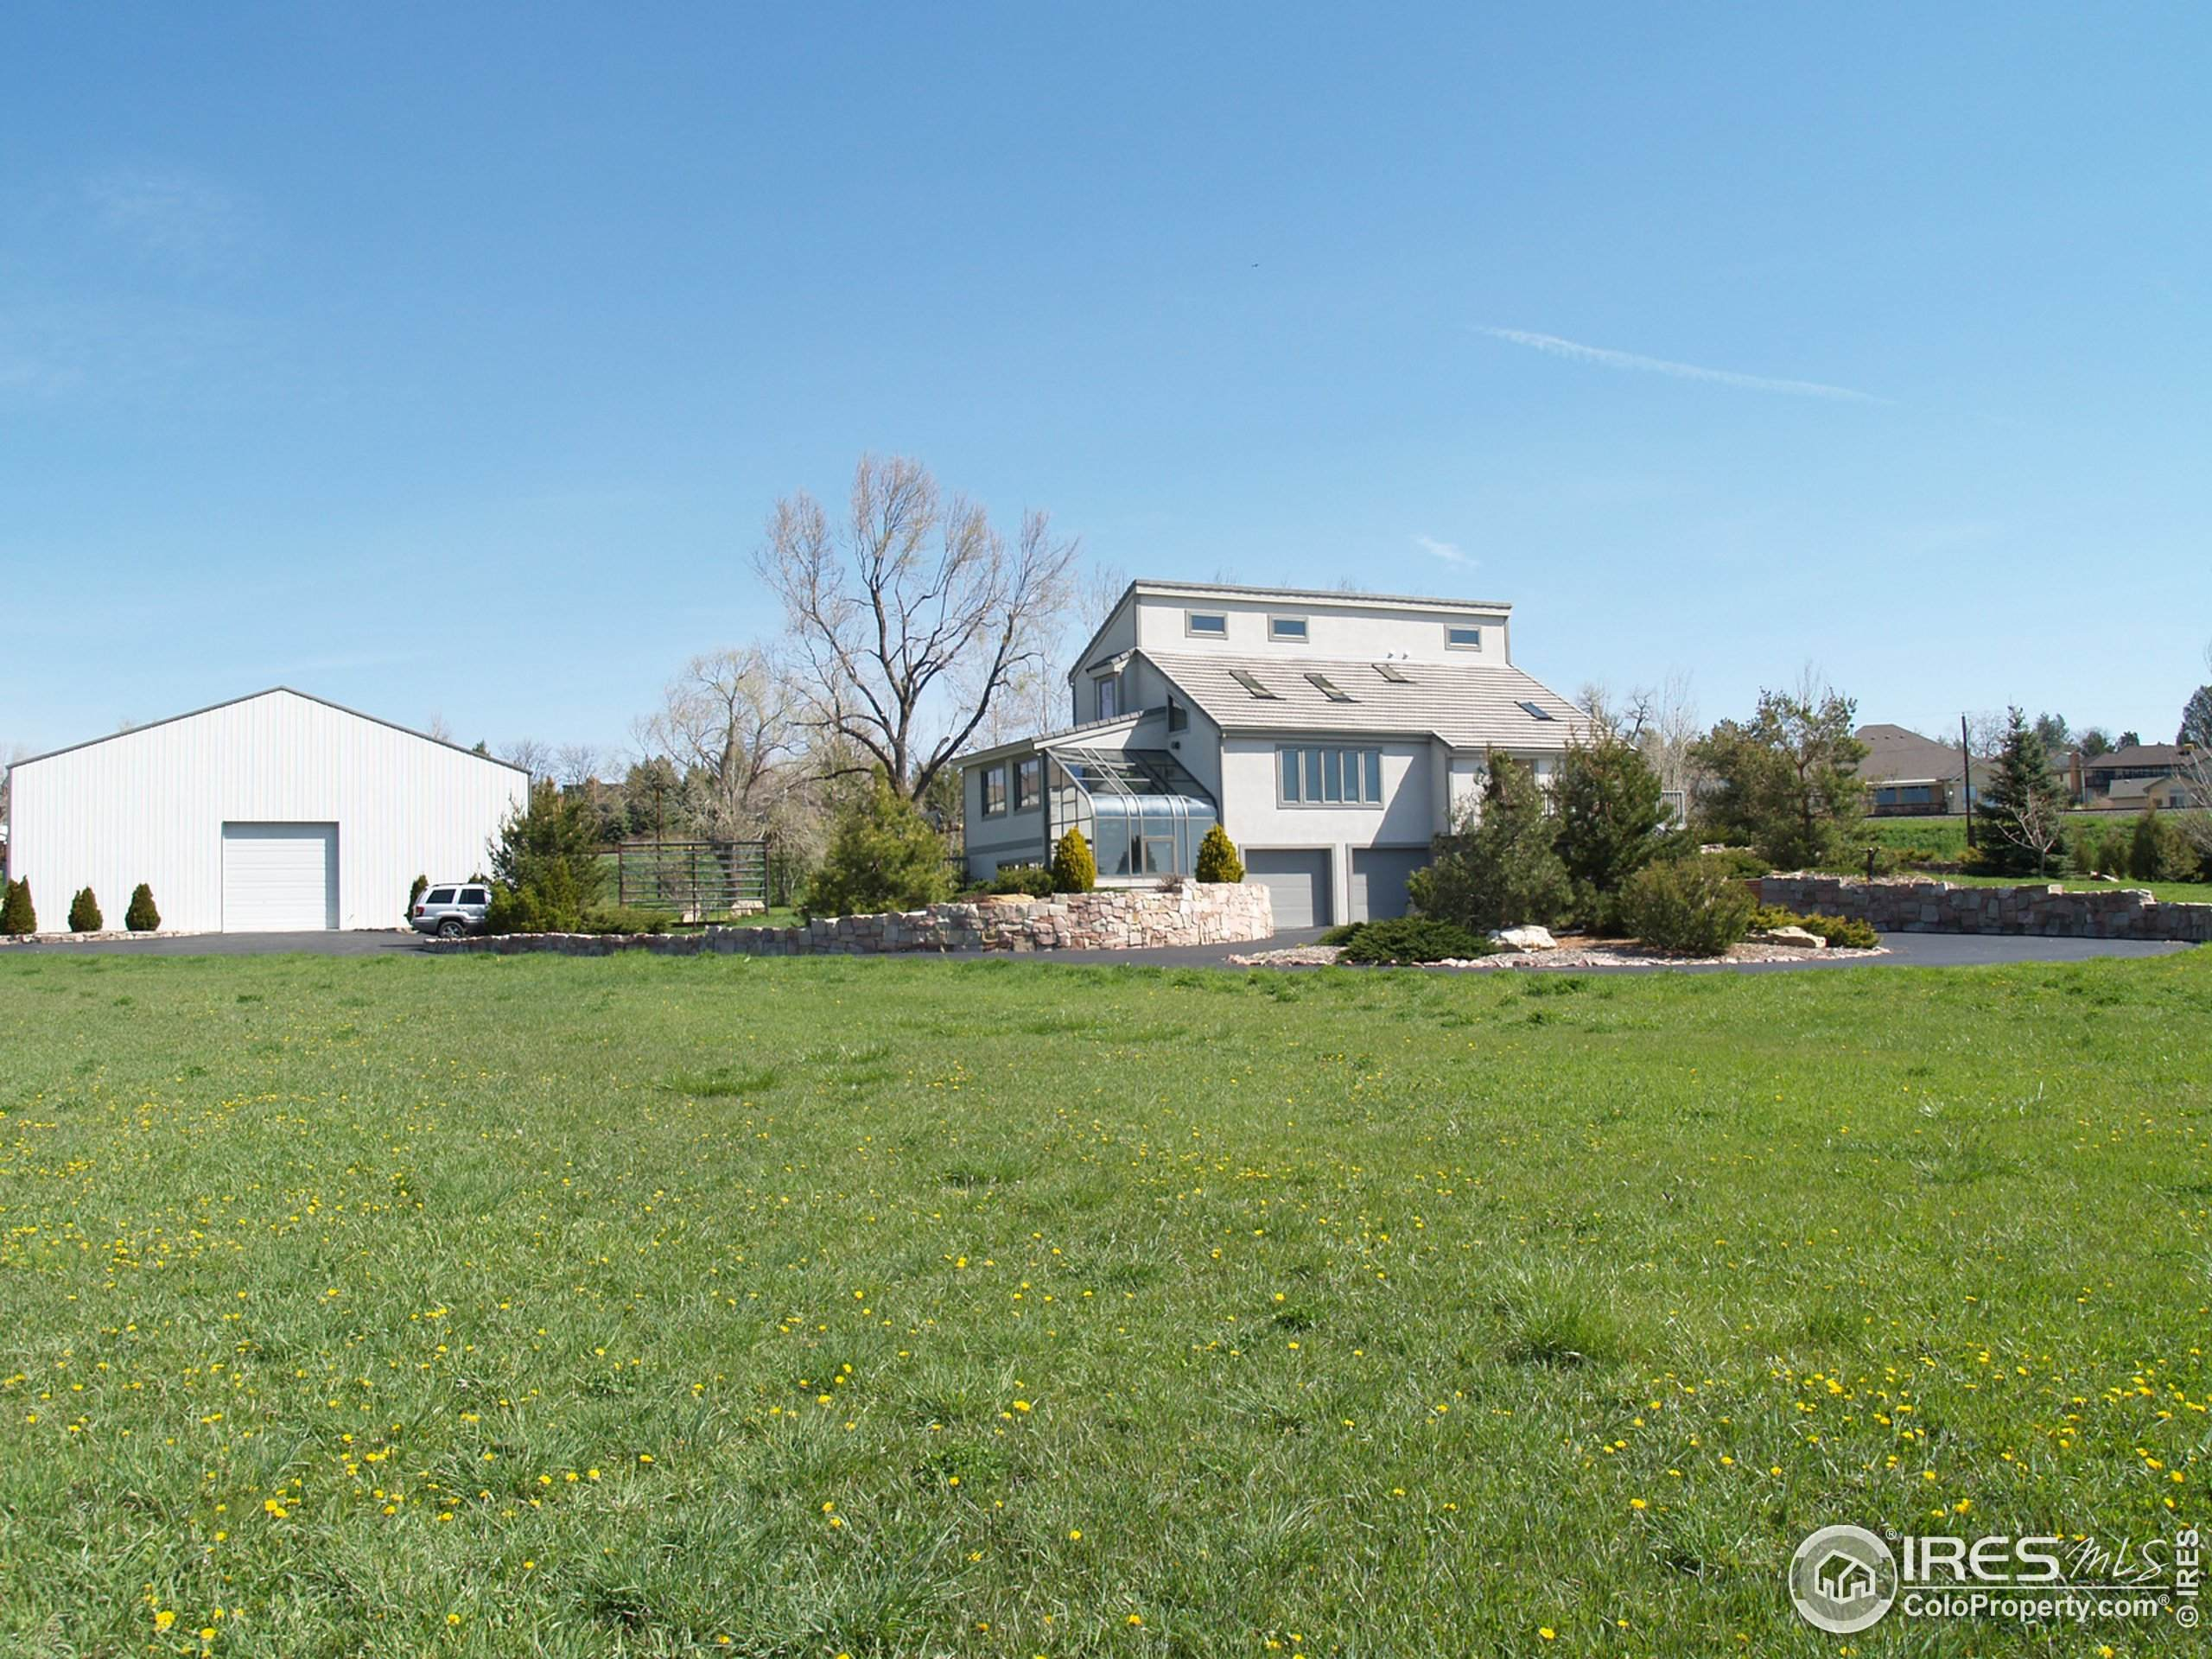 2109 Brooks Way, Longmont, CO 80504 (MLS #928528) :: Downtown Real Estate Partners